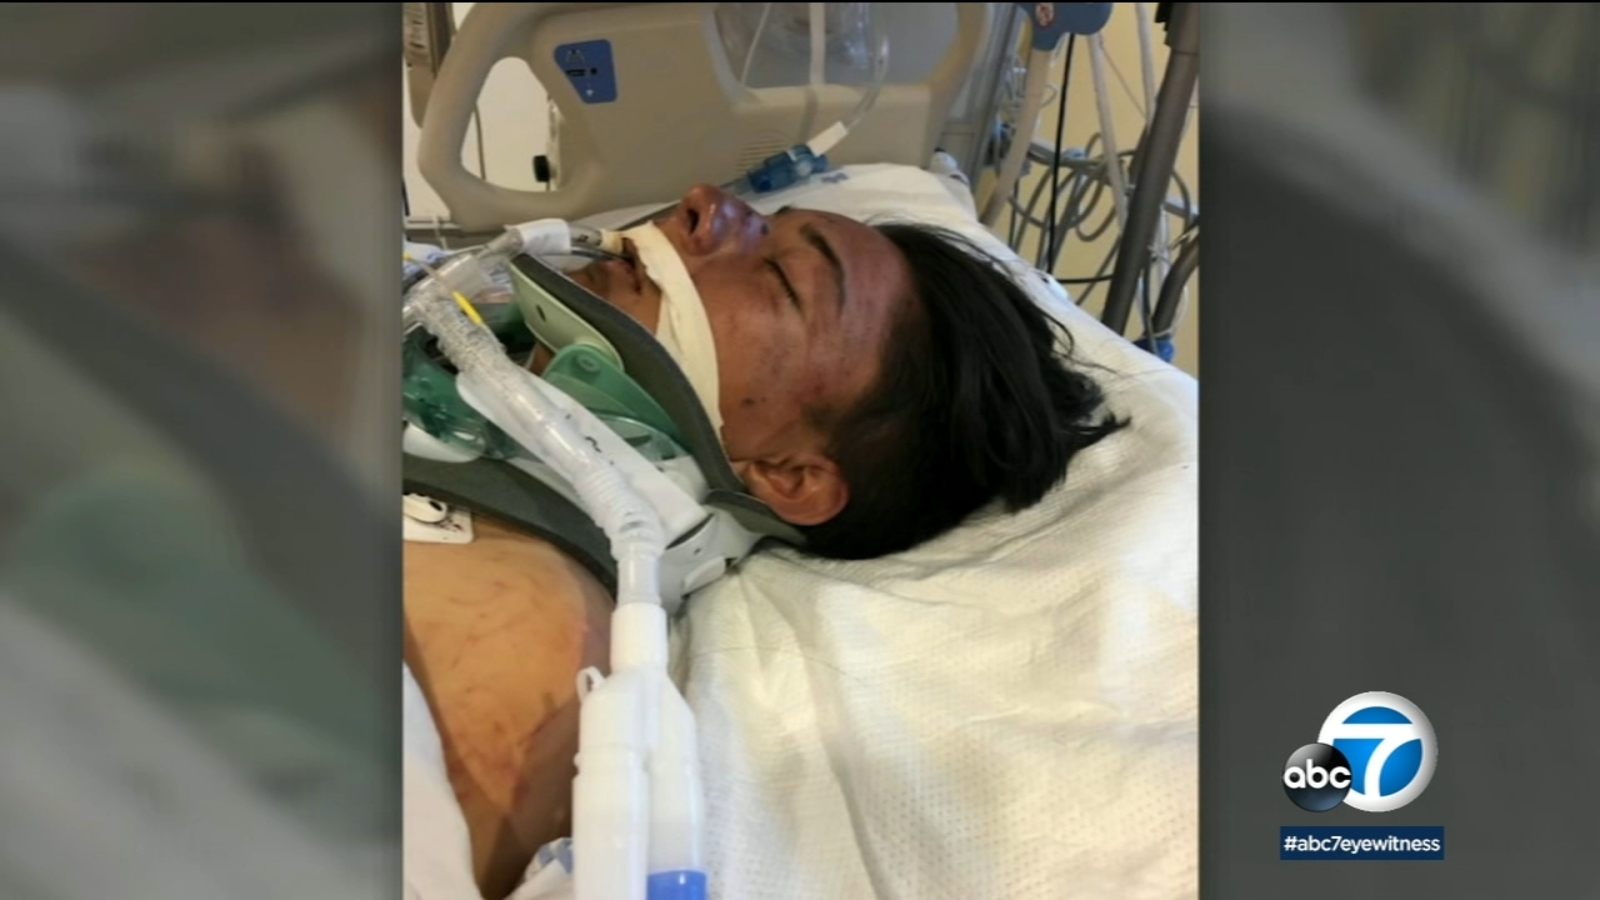 South LA hit-and-run: LAPD steps up efforts to find driver who severely injured teen